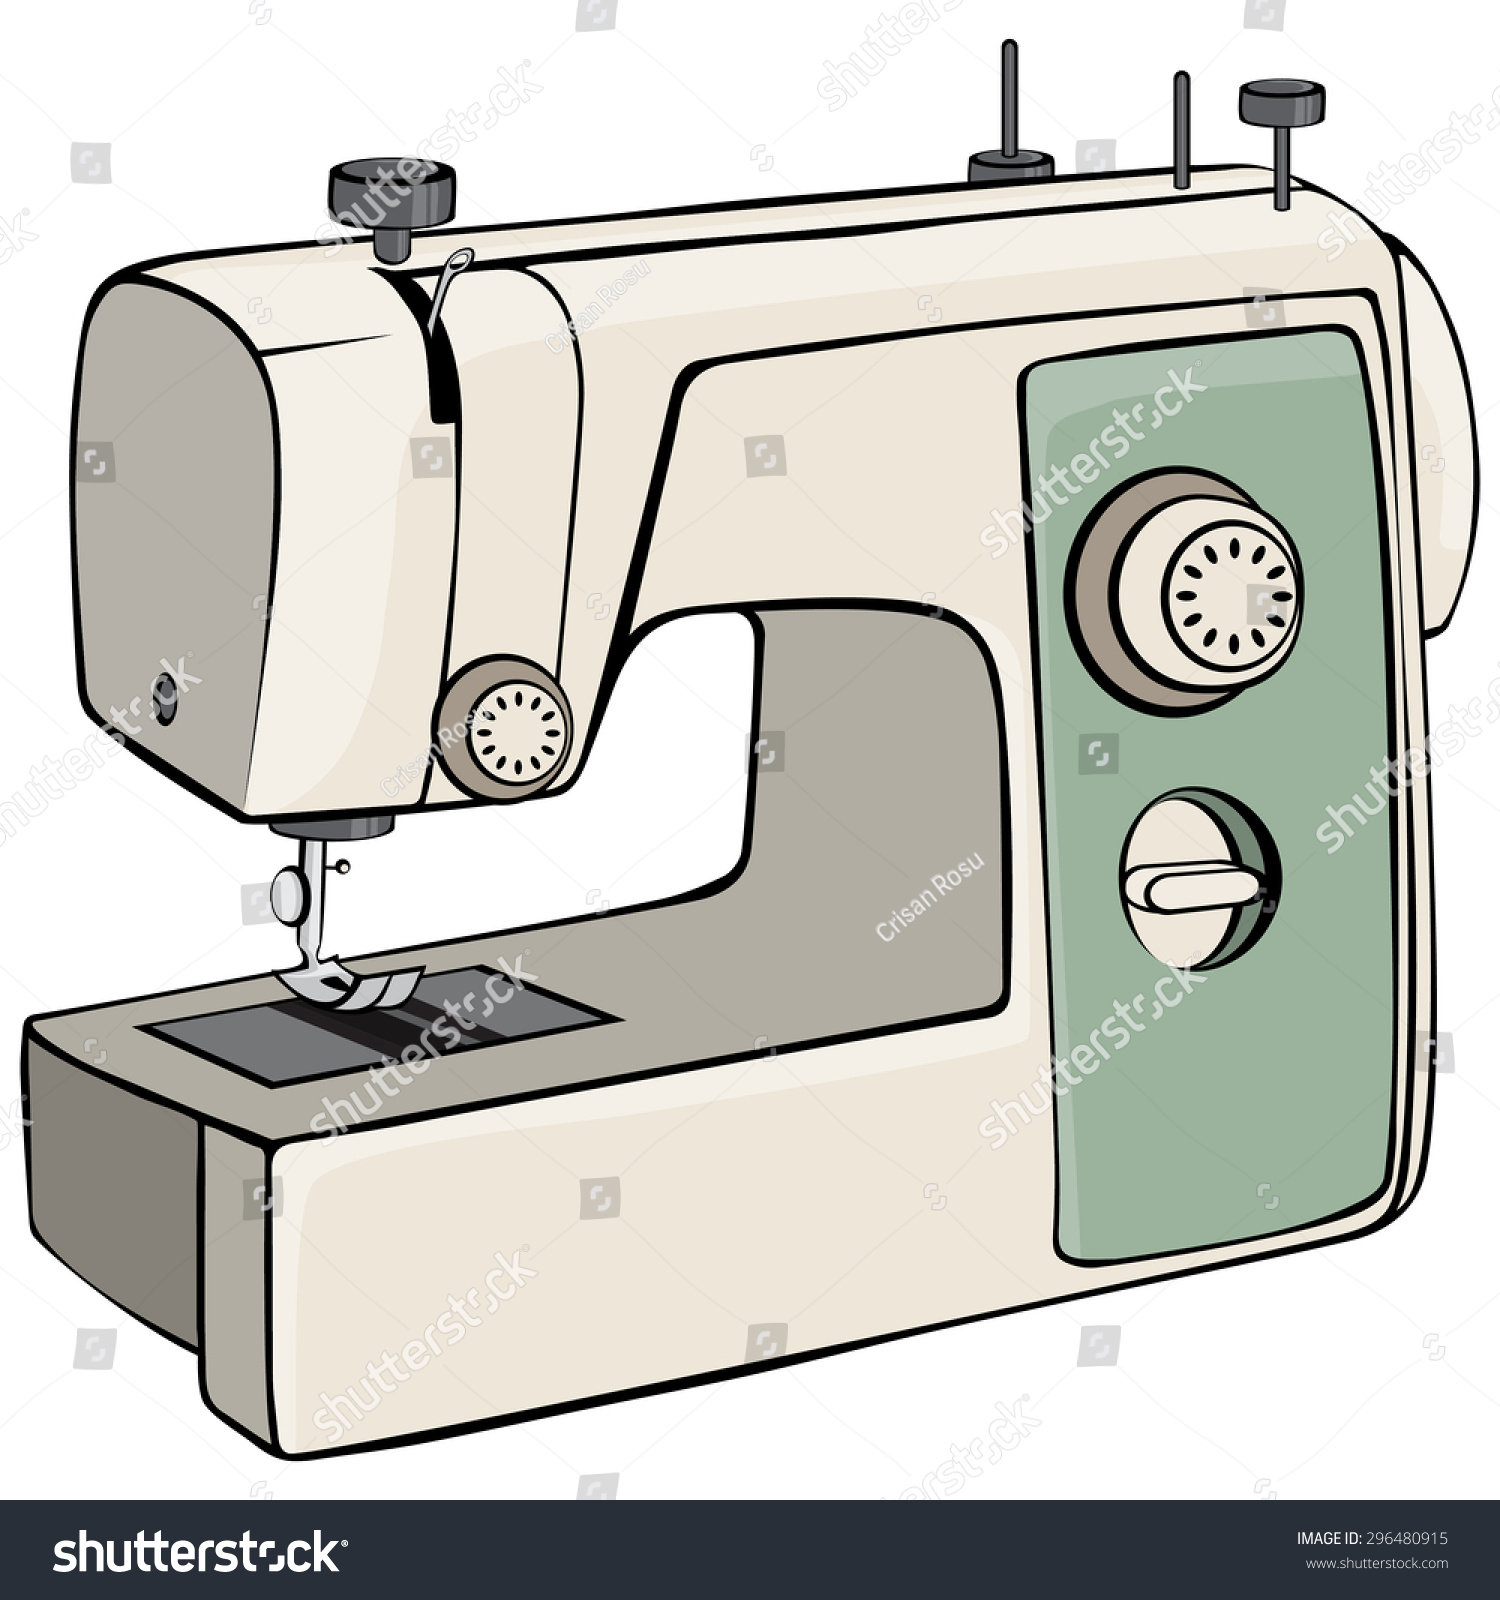 drawing of sewing machine